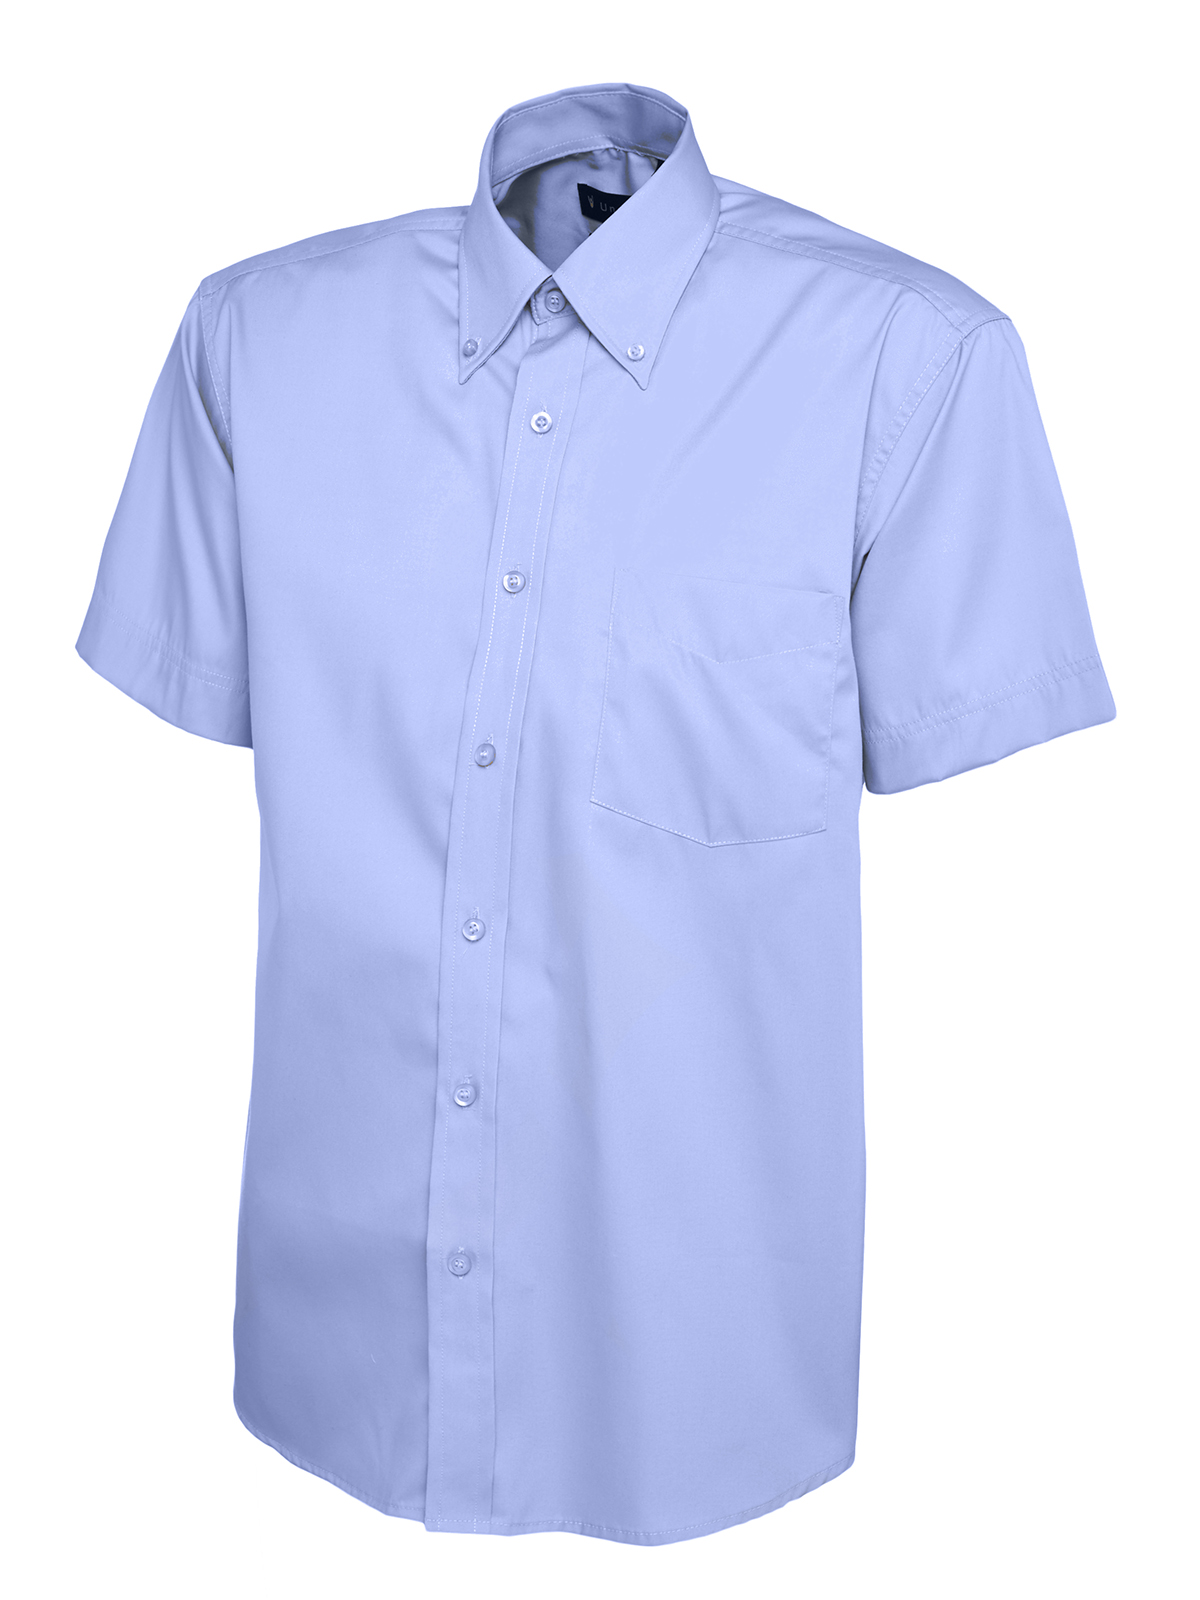 Uc702 mens short sleeve oxford shirt for Mens short sleeve oxford shirt